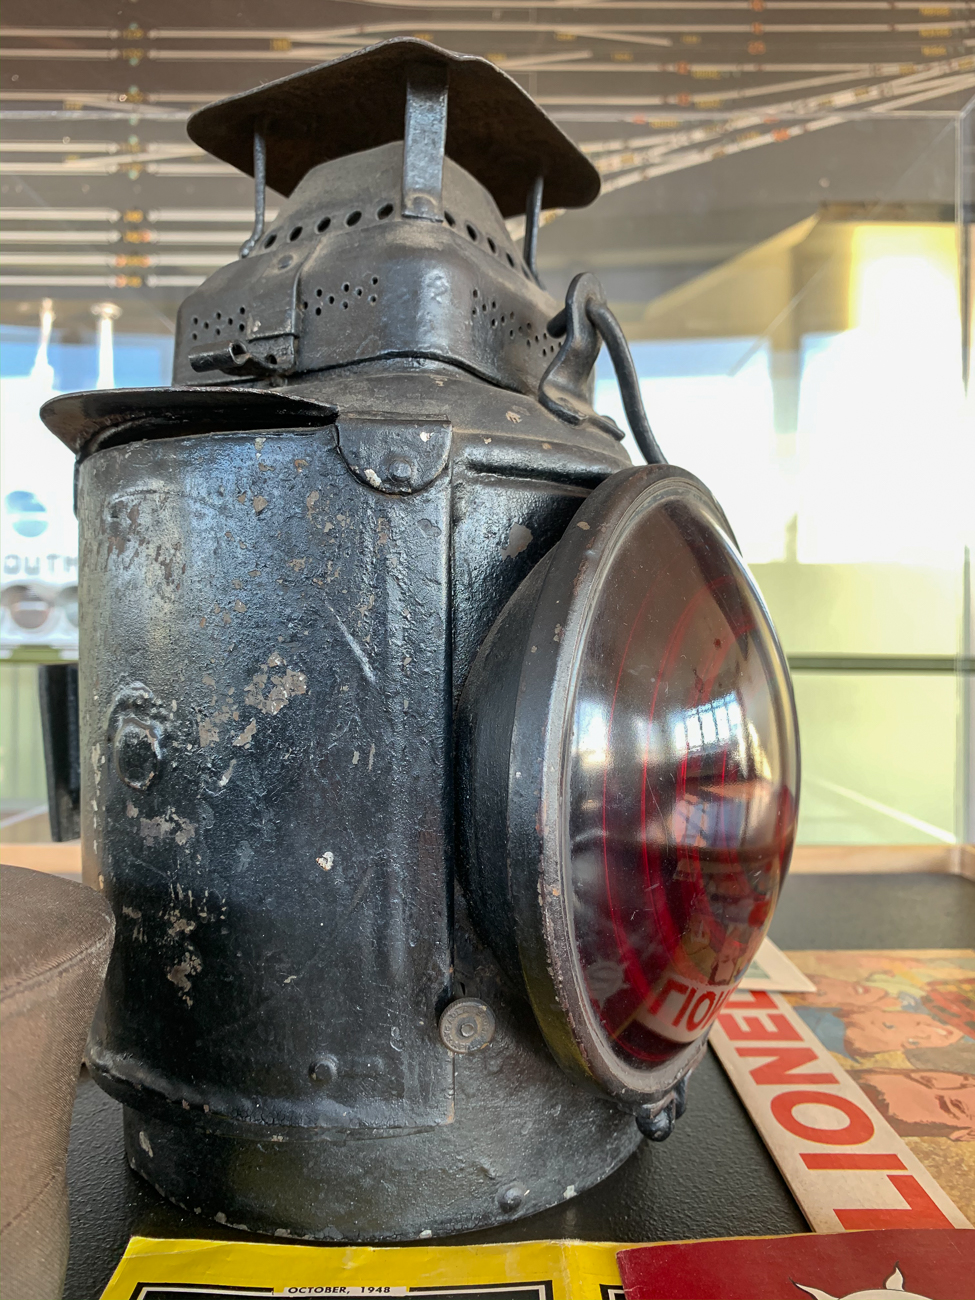 Two displays with various railroad-related paraphernalia can be seen inside the tower today. Old pamphlets, garments, tools, and other odds and ends occupy glass cases. / Image: Phil Armstrong, Cincinnati Refined // Published: 1.17.20